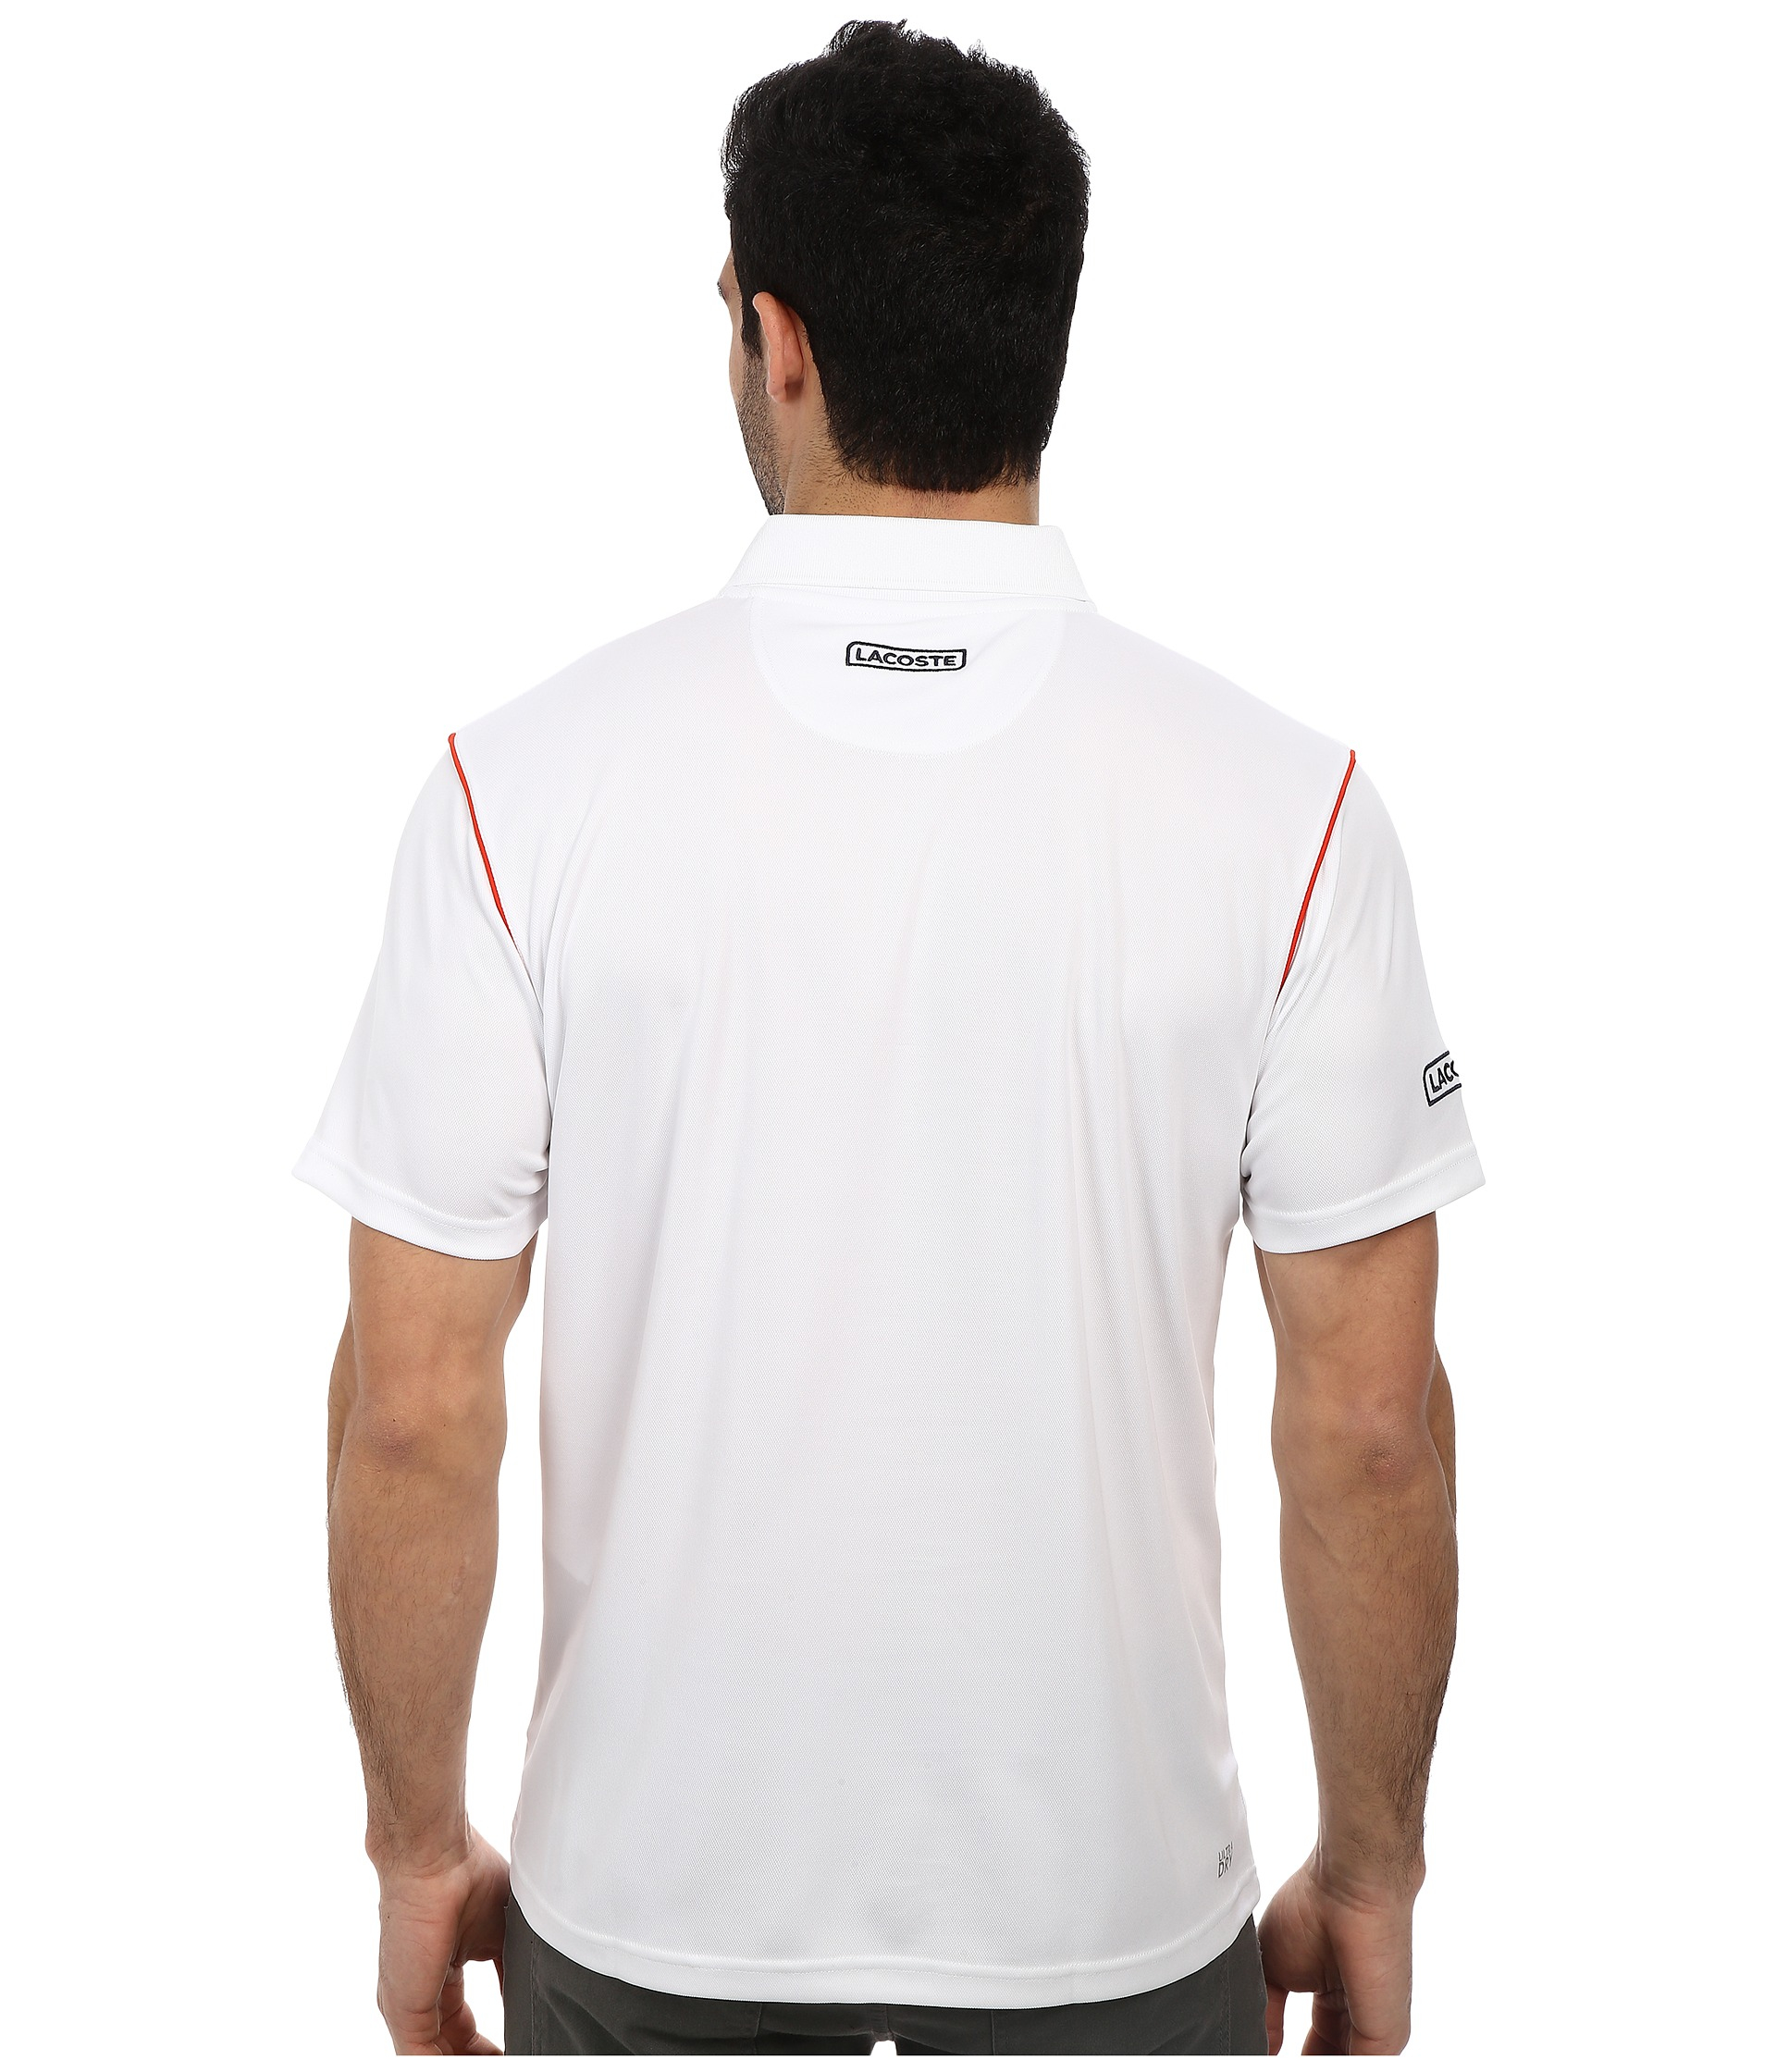 Lacoste sport pique ultra dry chest stripe polo in white for Lacoste stripe pique polo shirt